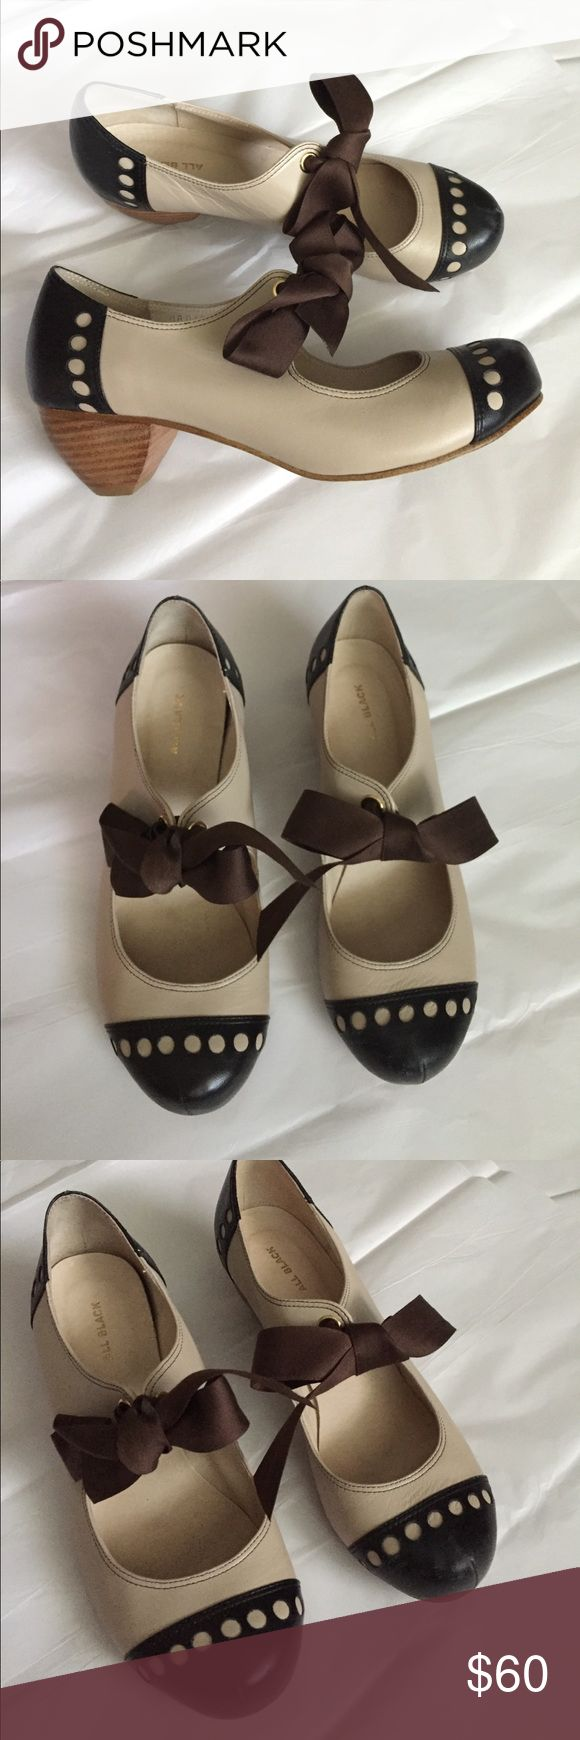 Anthropologie Oxfords! Anthropologie brand All Black Heeled oxford with tie! Black and cream with a brown Bow! Size 9.5.  Heel 2 inches! Gently used condition! Anthropologie Shoes Heels